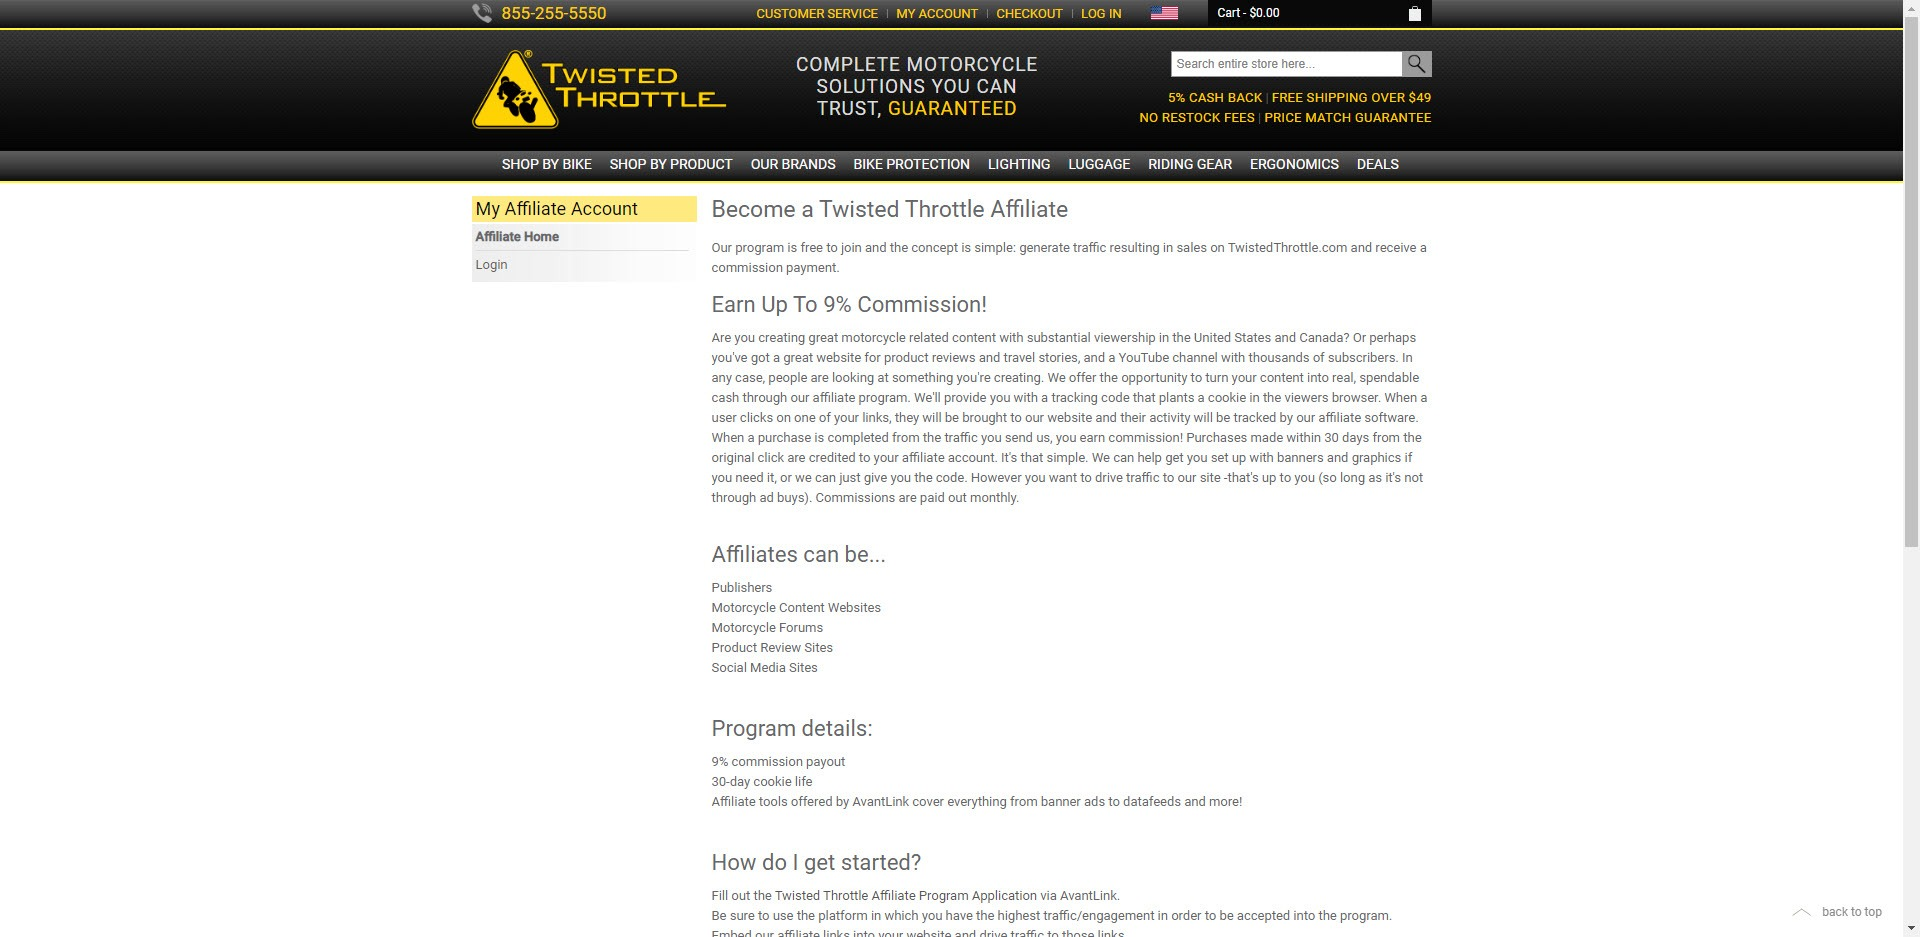 MotorCycle Affiliate Programs - Twisted Throttle affiliate